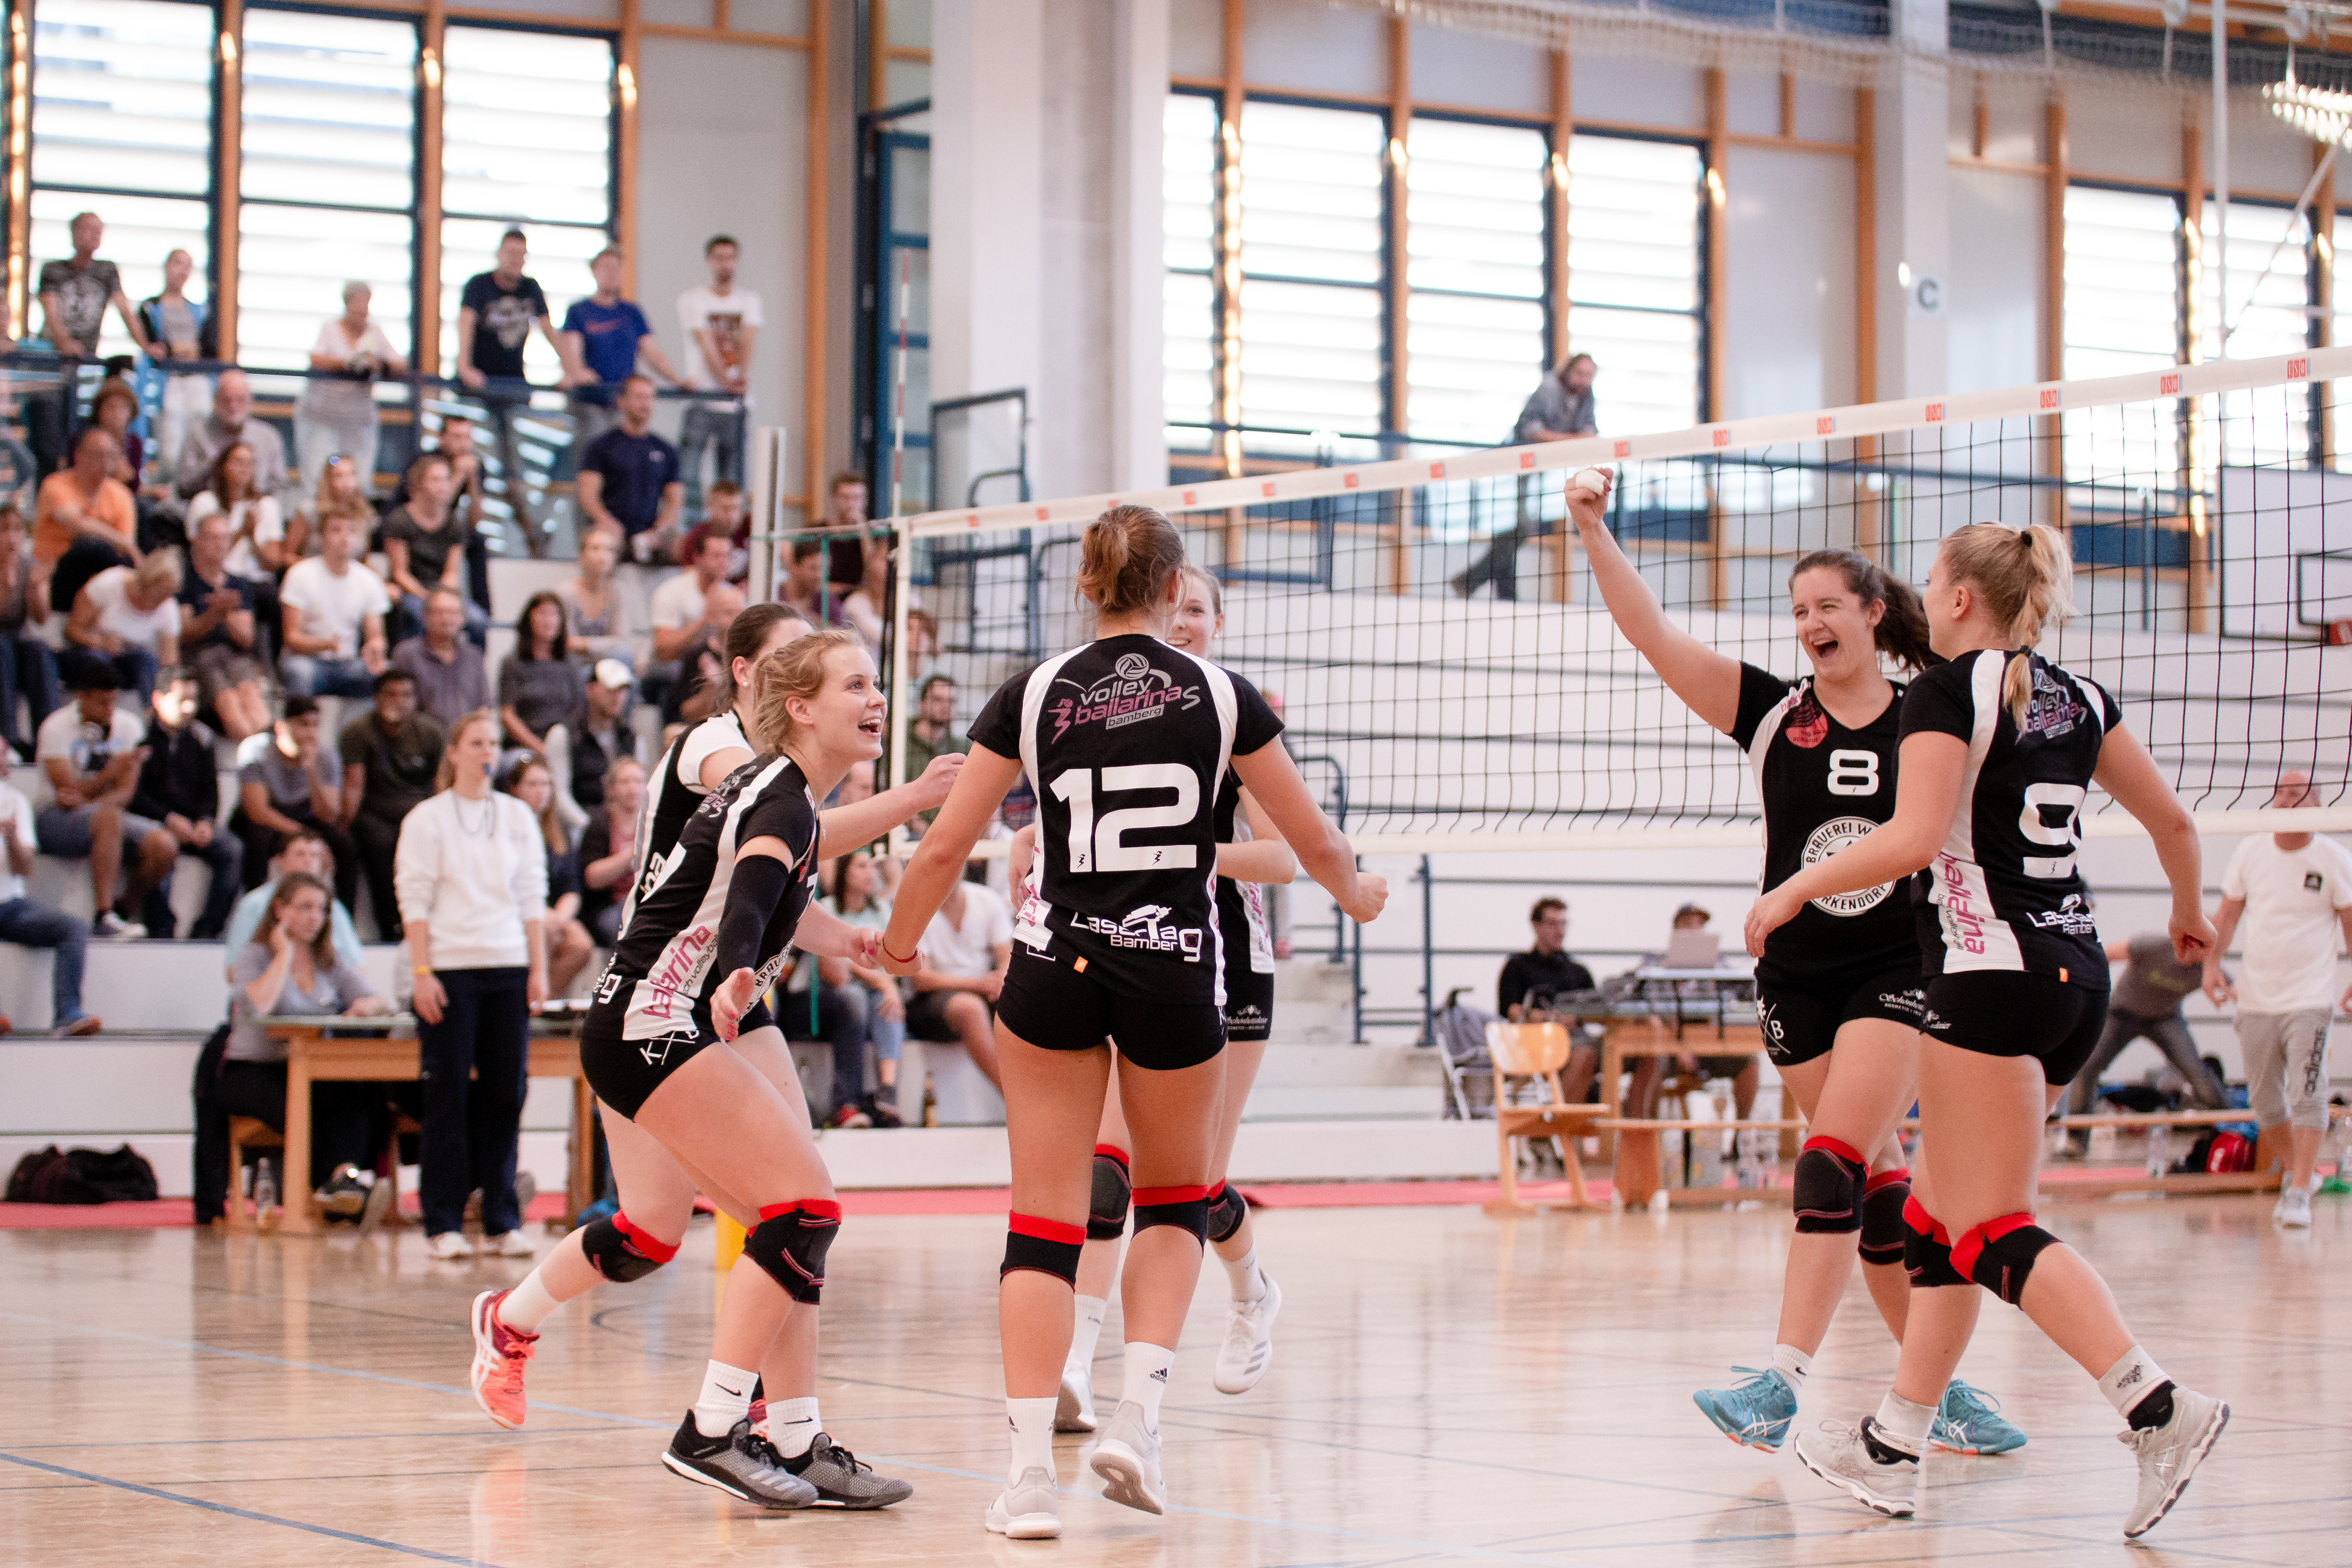 """<span  class=""""uc_style_uc_tiles_grid_image_elementor_uc_items_attribute_title"""" style=""""color:#ffffff;"""">Volleyball Leonie-559</span>"""